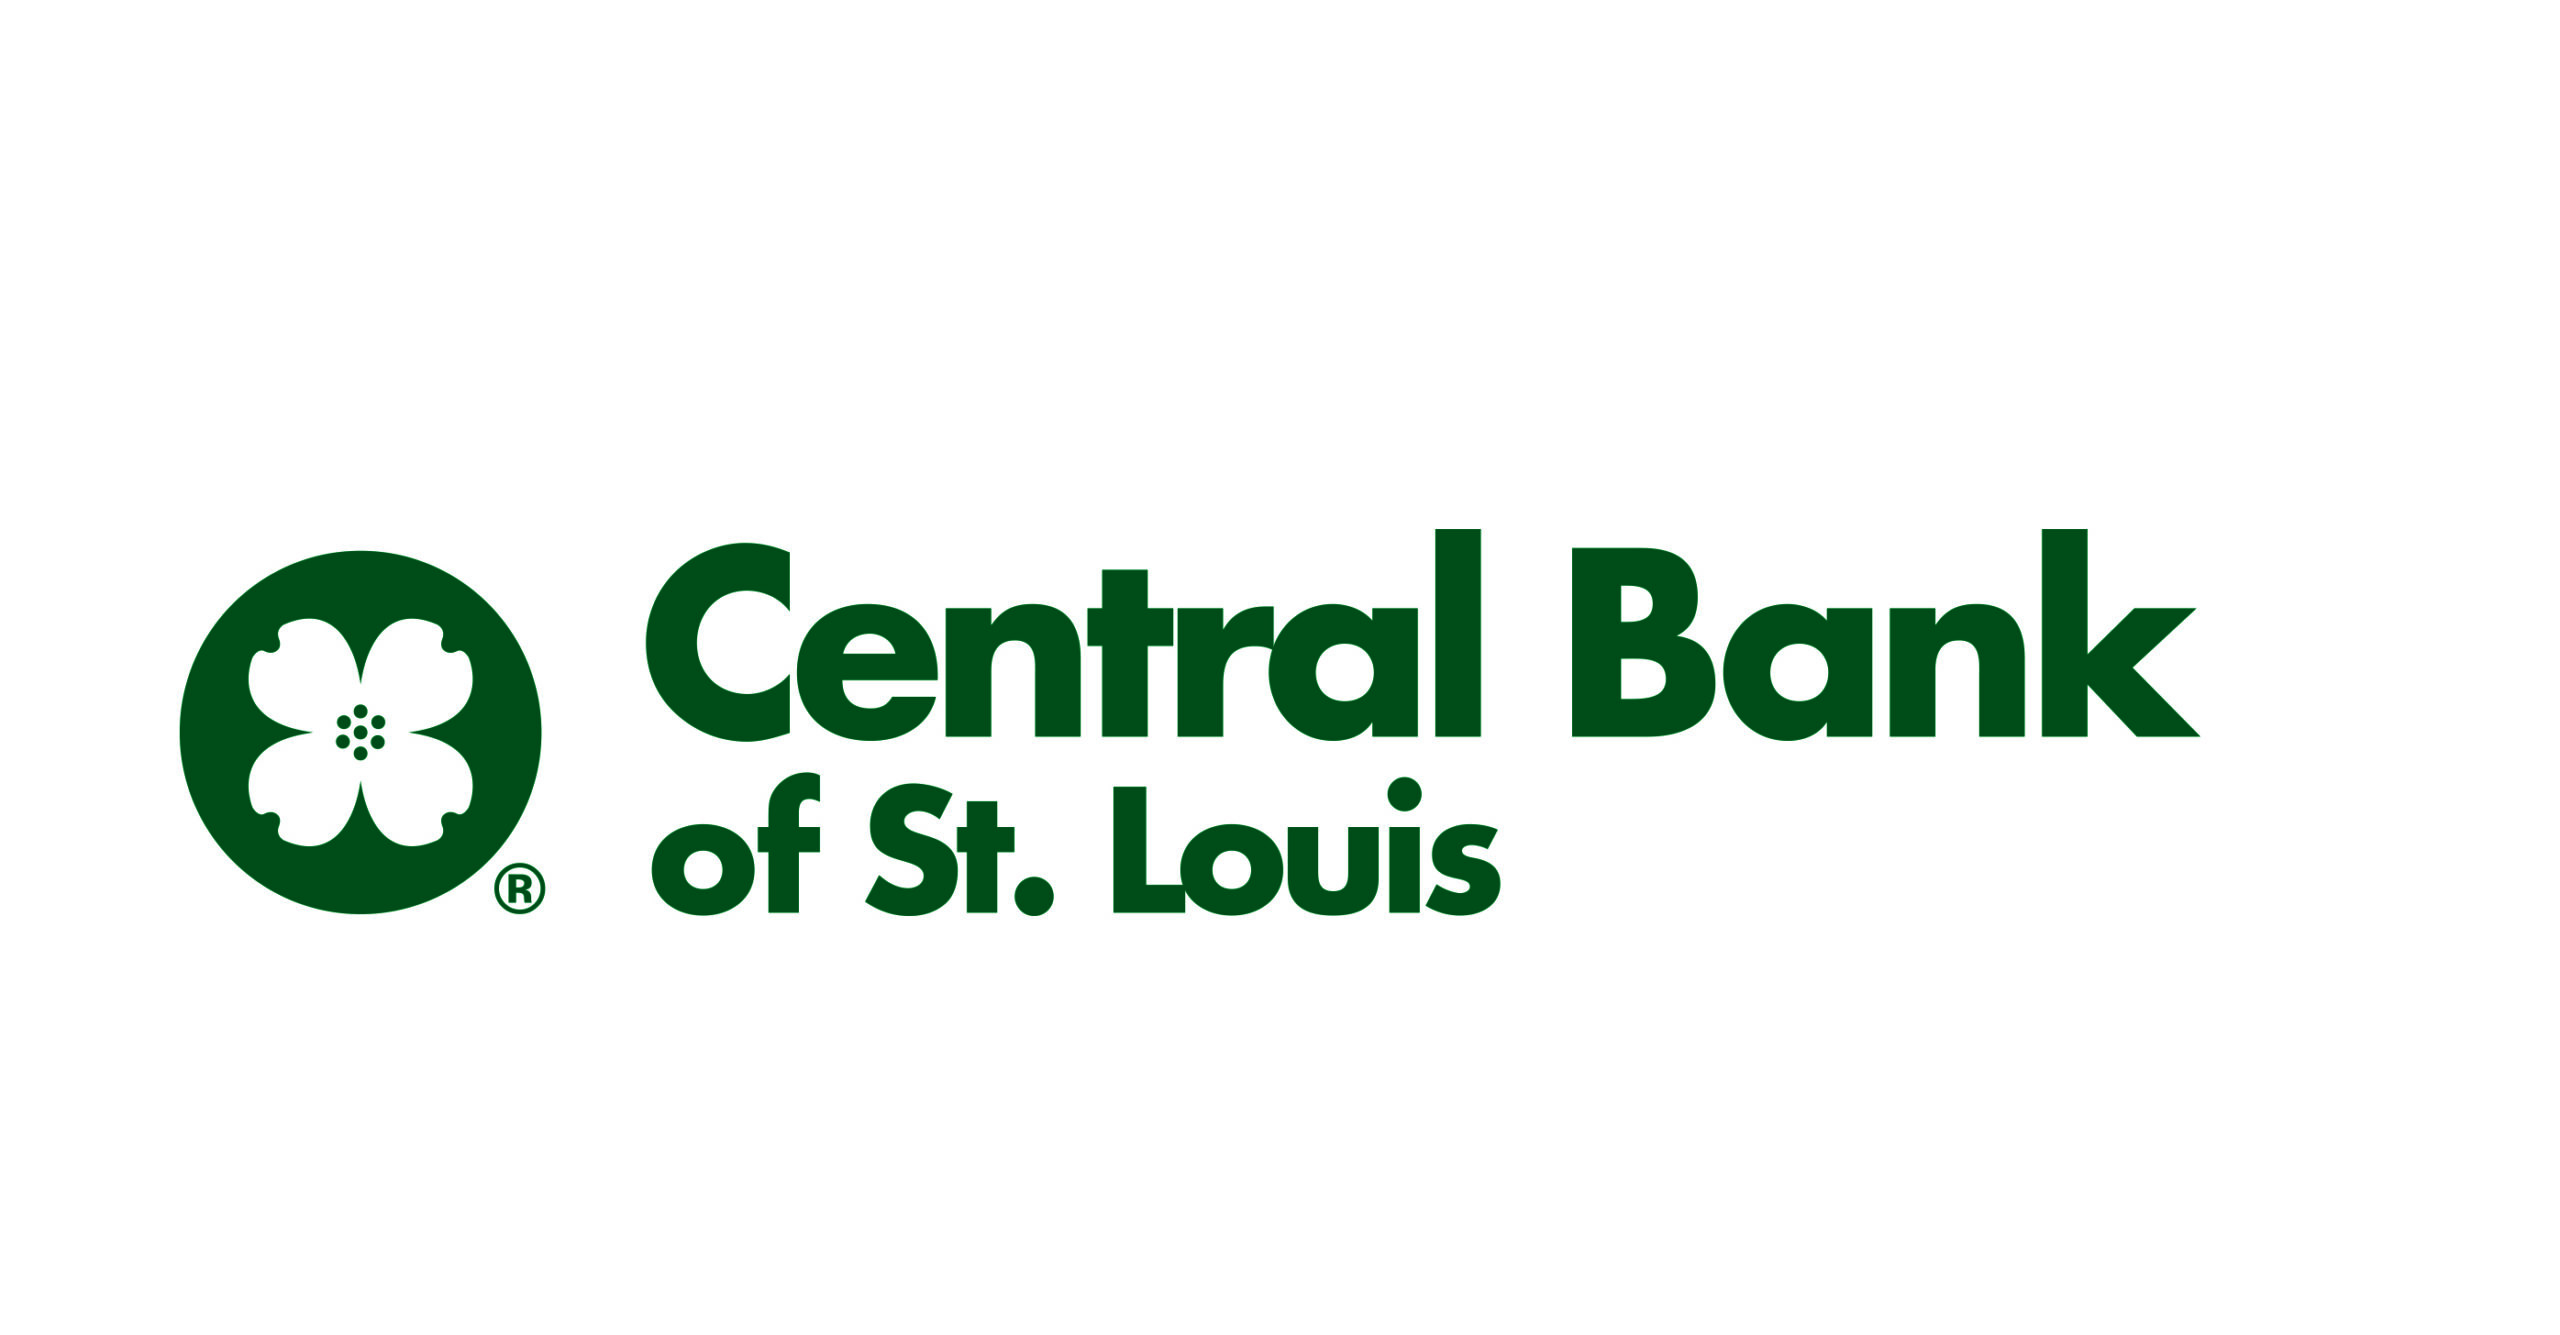 gkaspartnerlogos_0006_Central-Bank.jpg